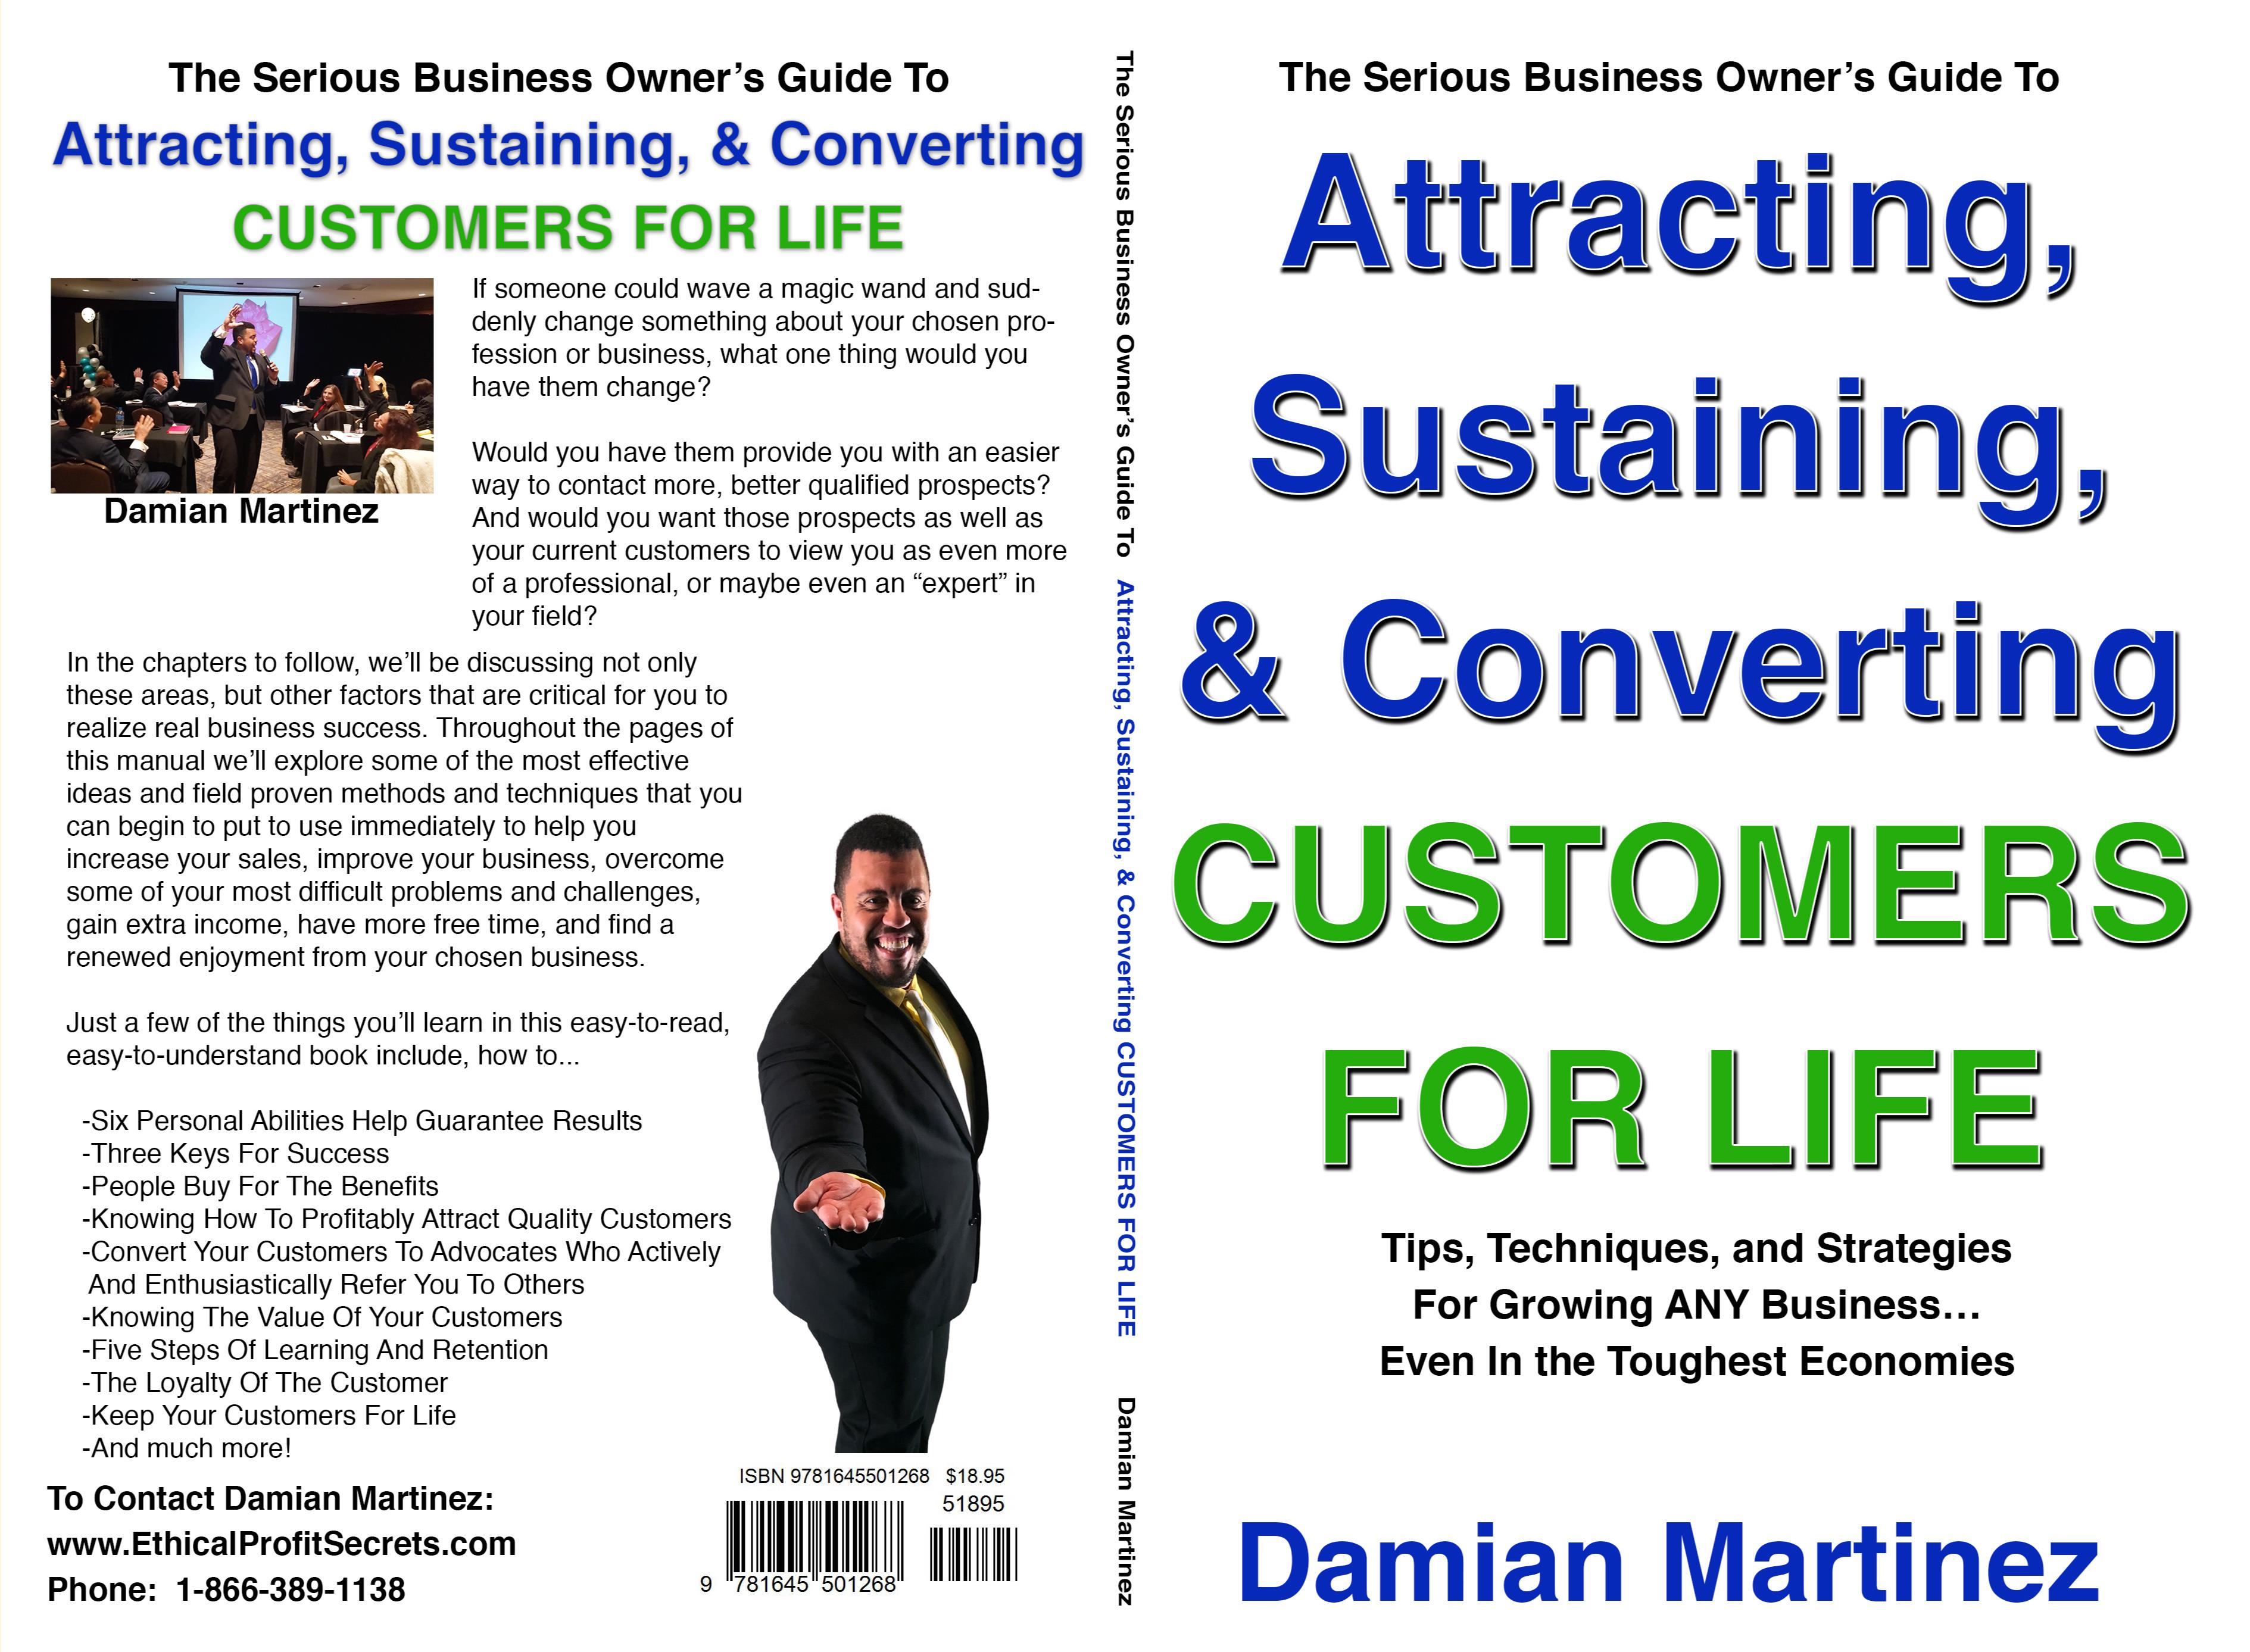 Attracting, Sustaining, & Converting CUSTOMERS FOR LIFE cover image